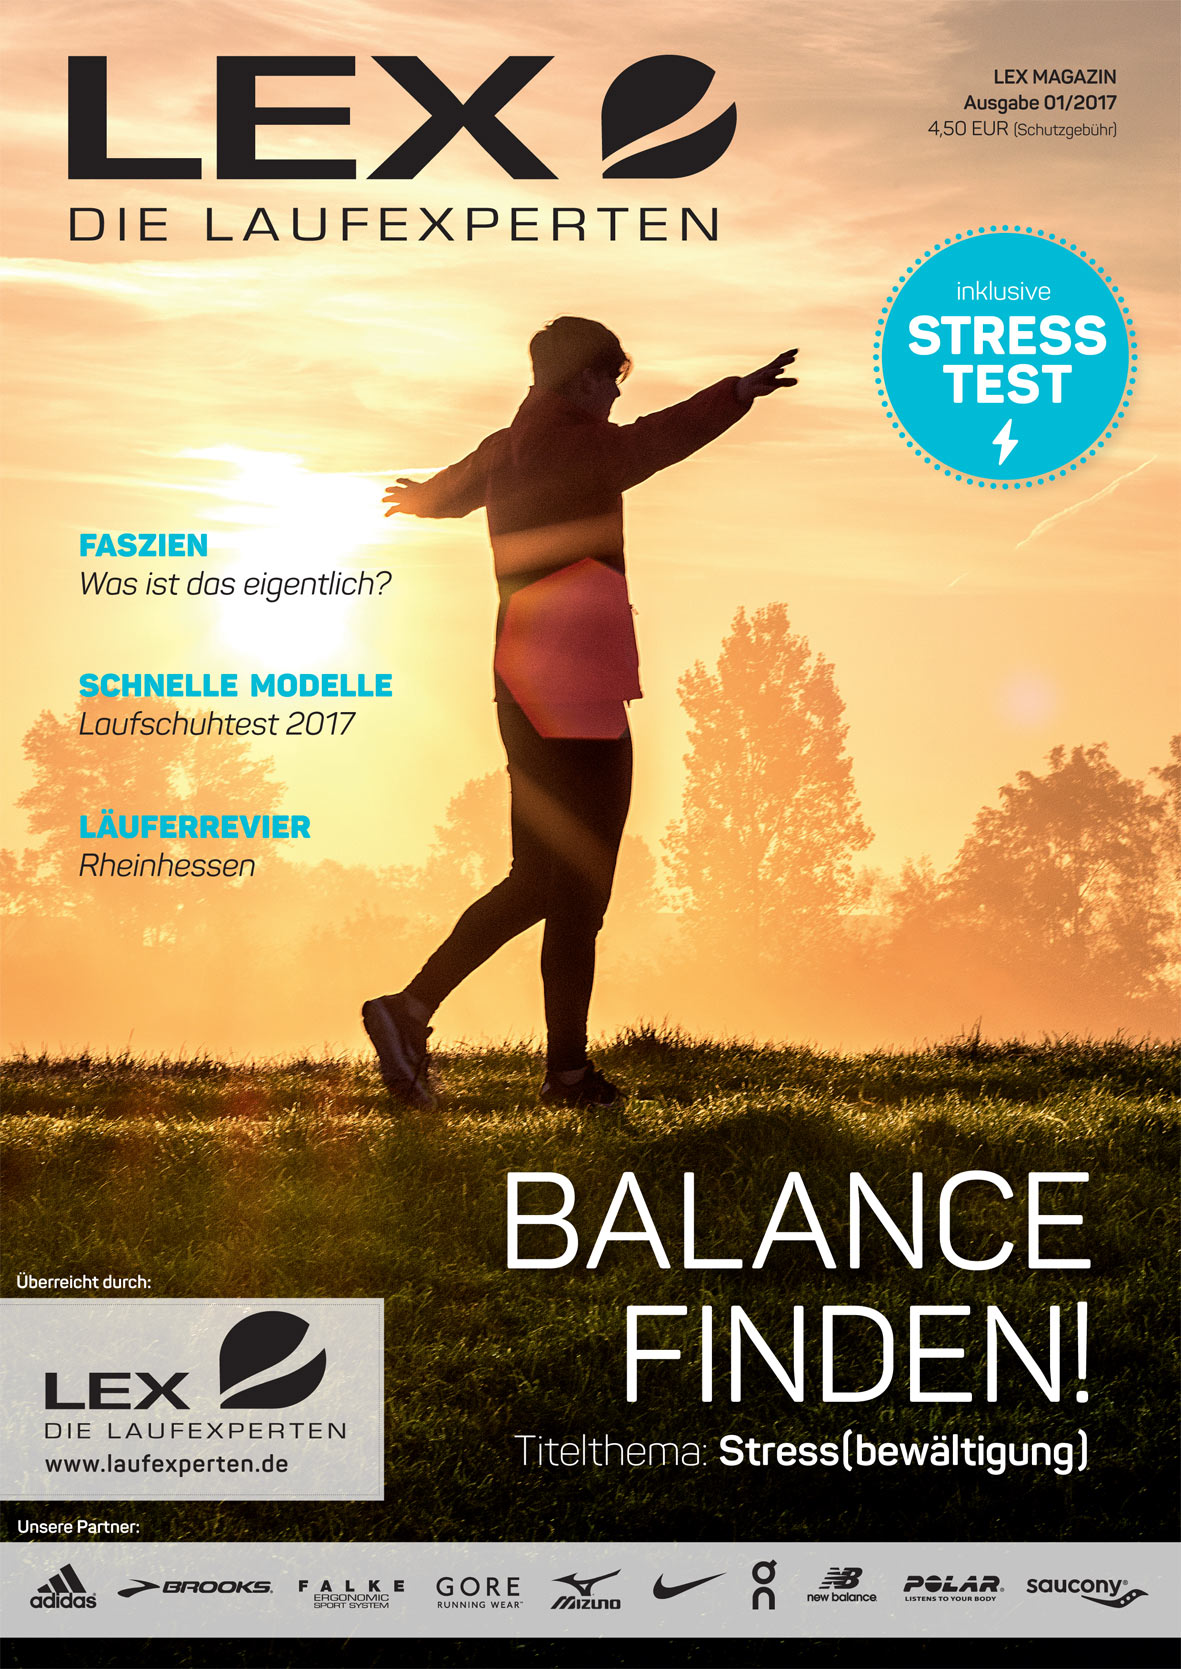 lex_magazin_01_17_cover.jpg